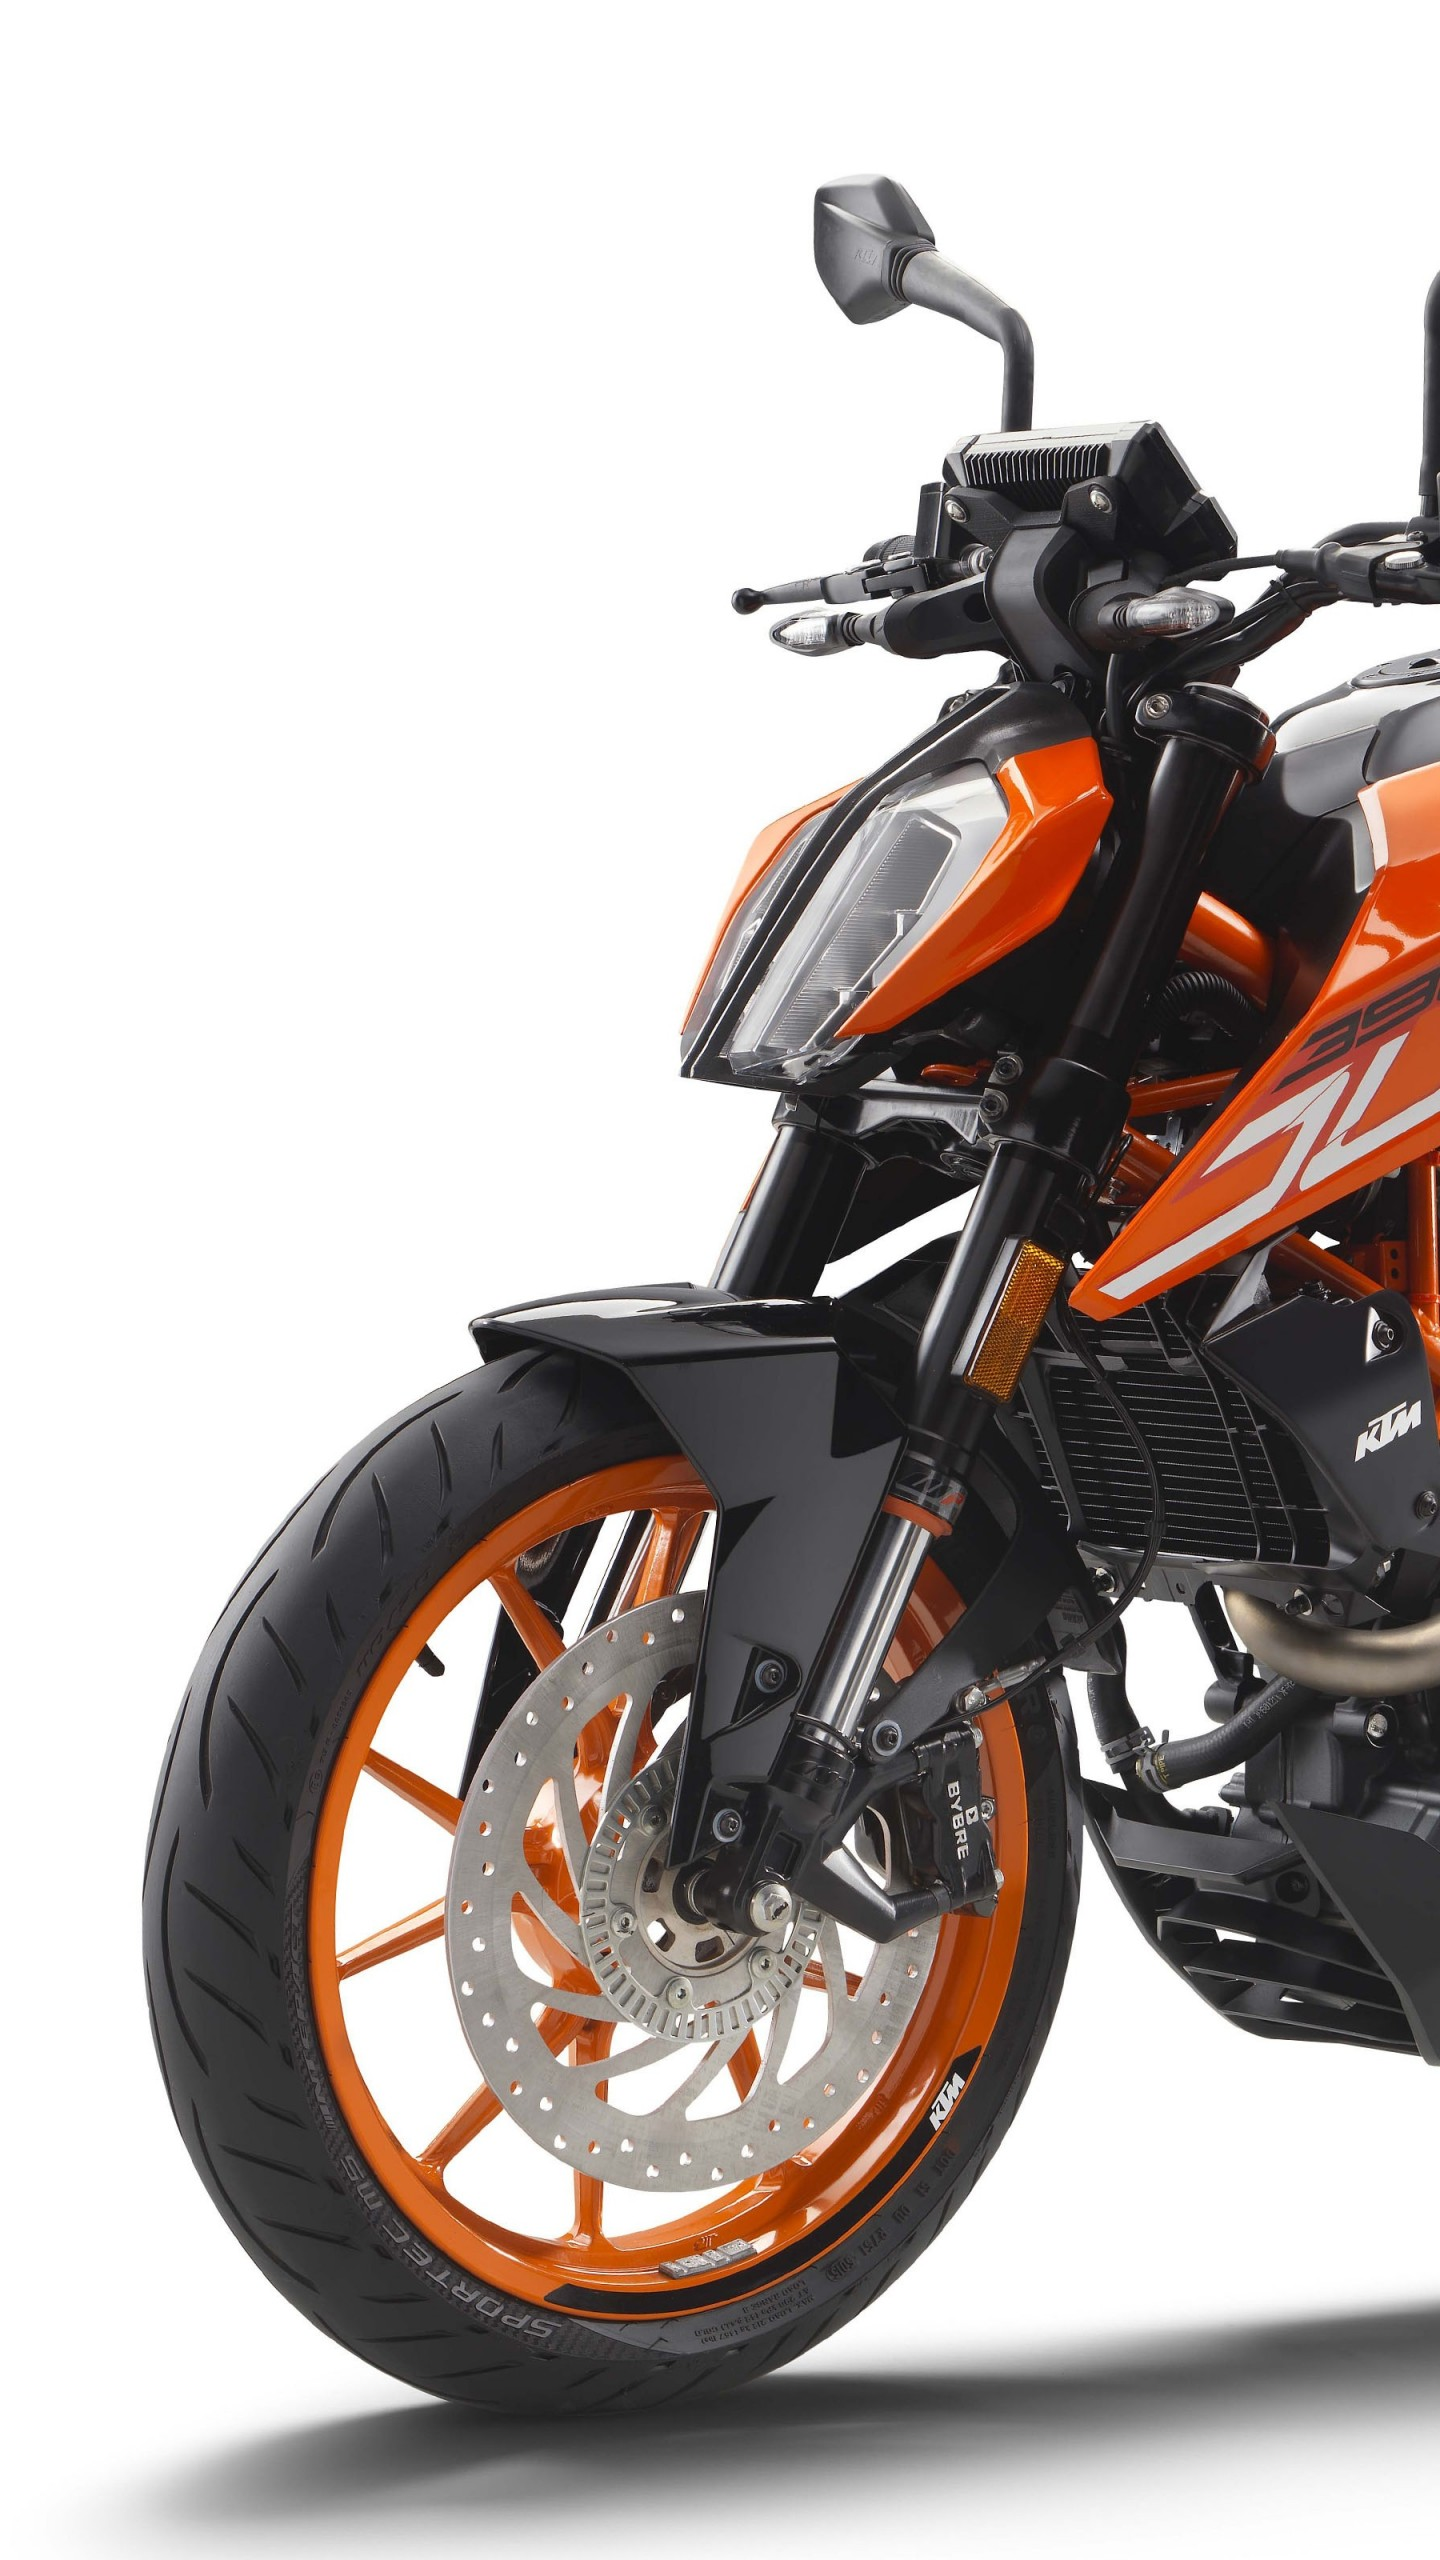 Ktm Duke 390 Png 1440x2560 Download Hd Wallpaper Wallpapertip